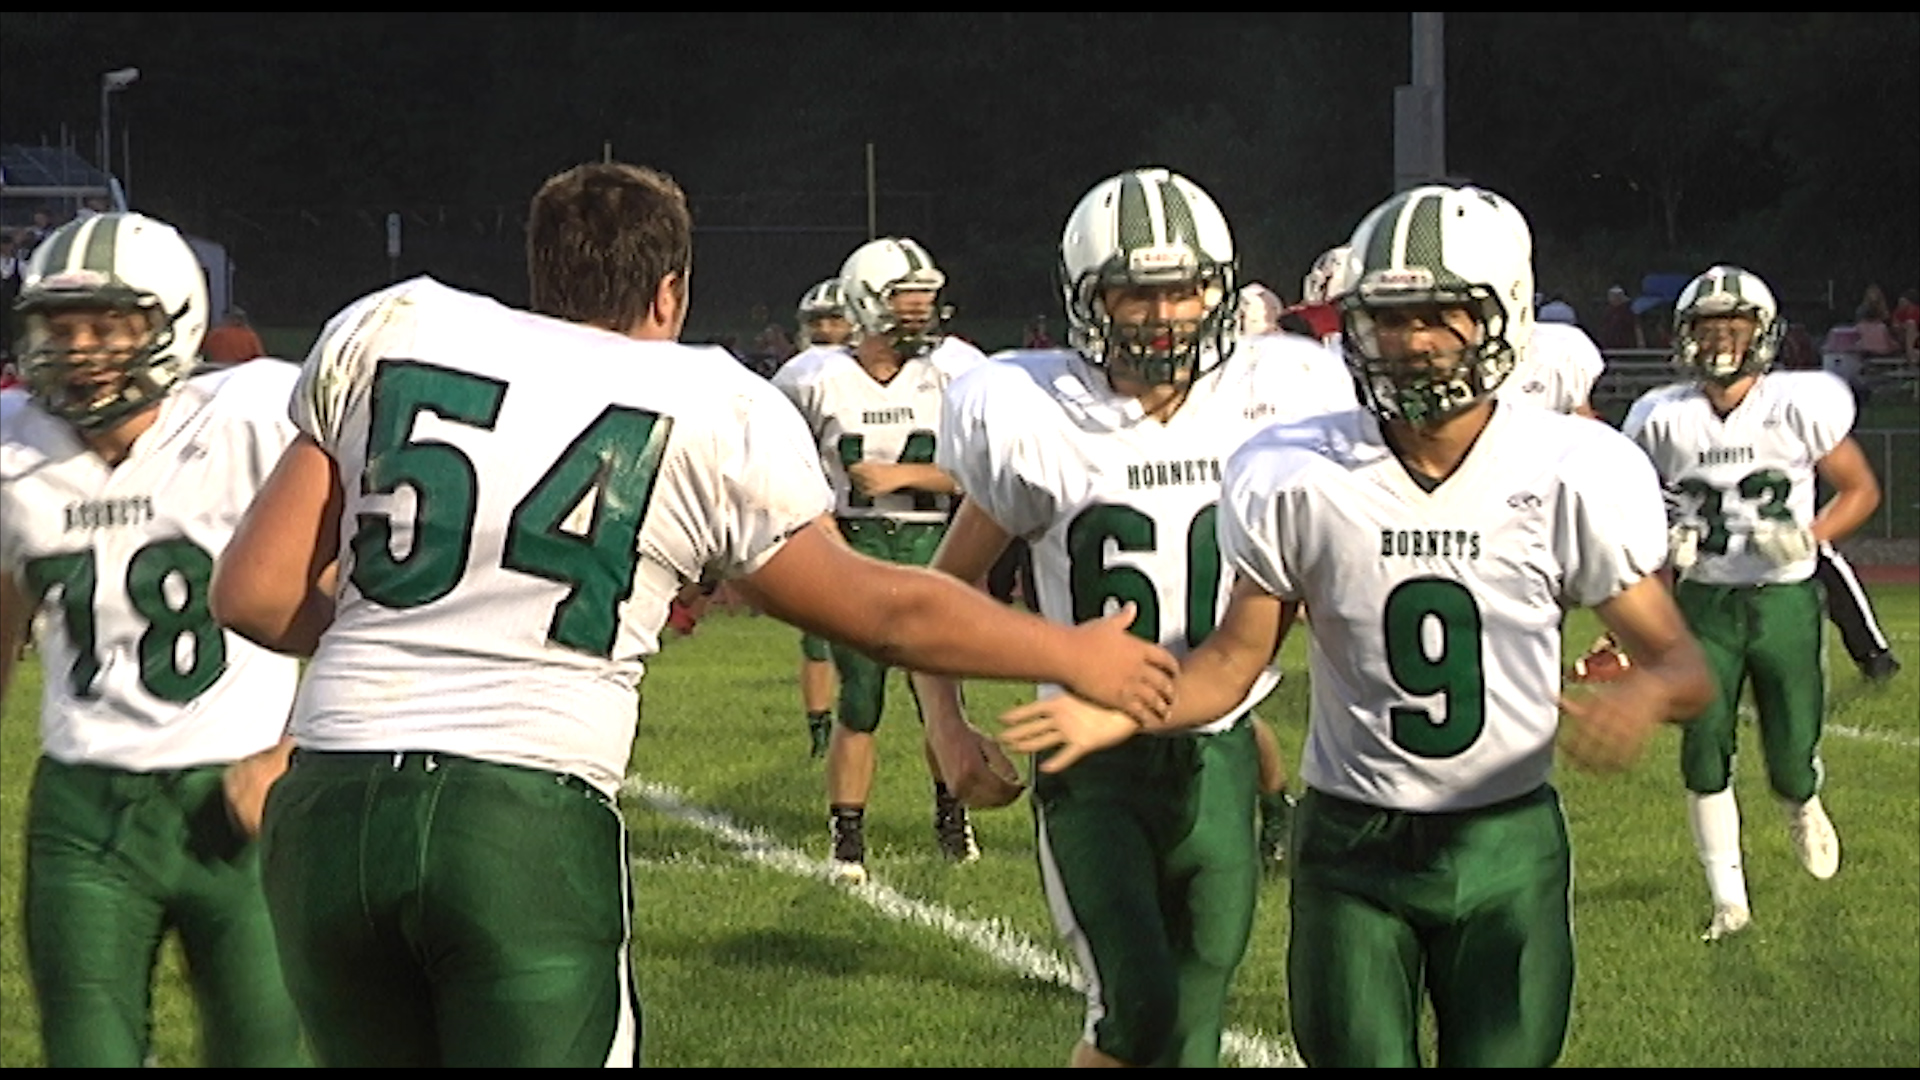 Wellsboro football 8 26_1472267398093.jpg